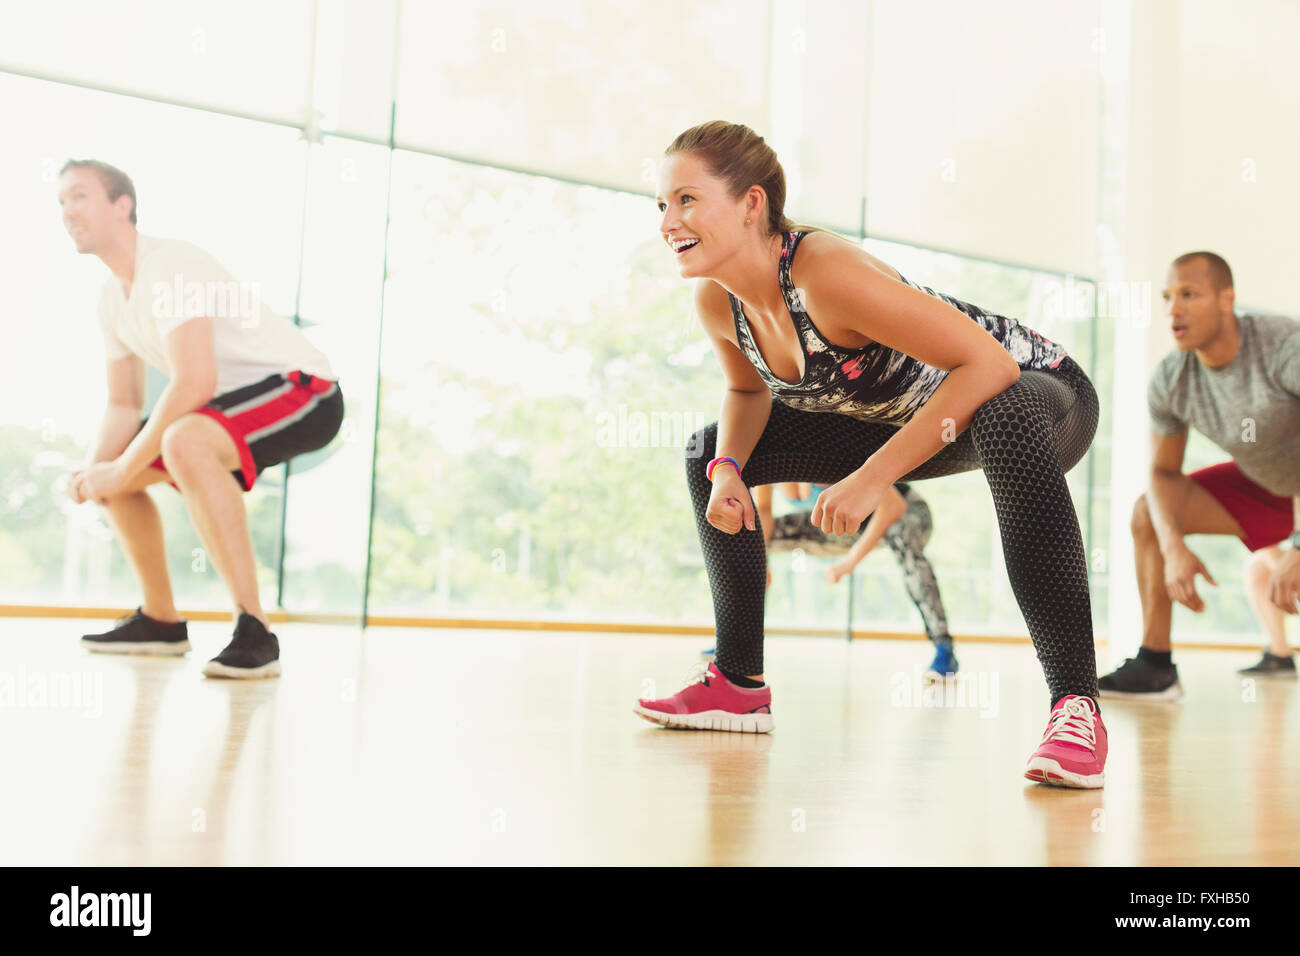 Smiling woman squatting in aerobics class - Stock Image